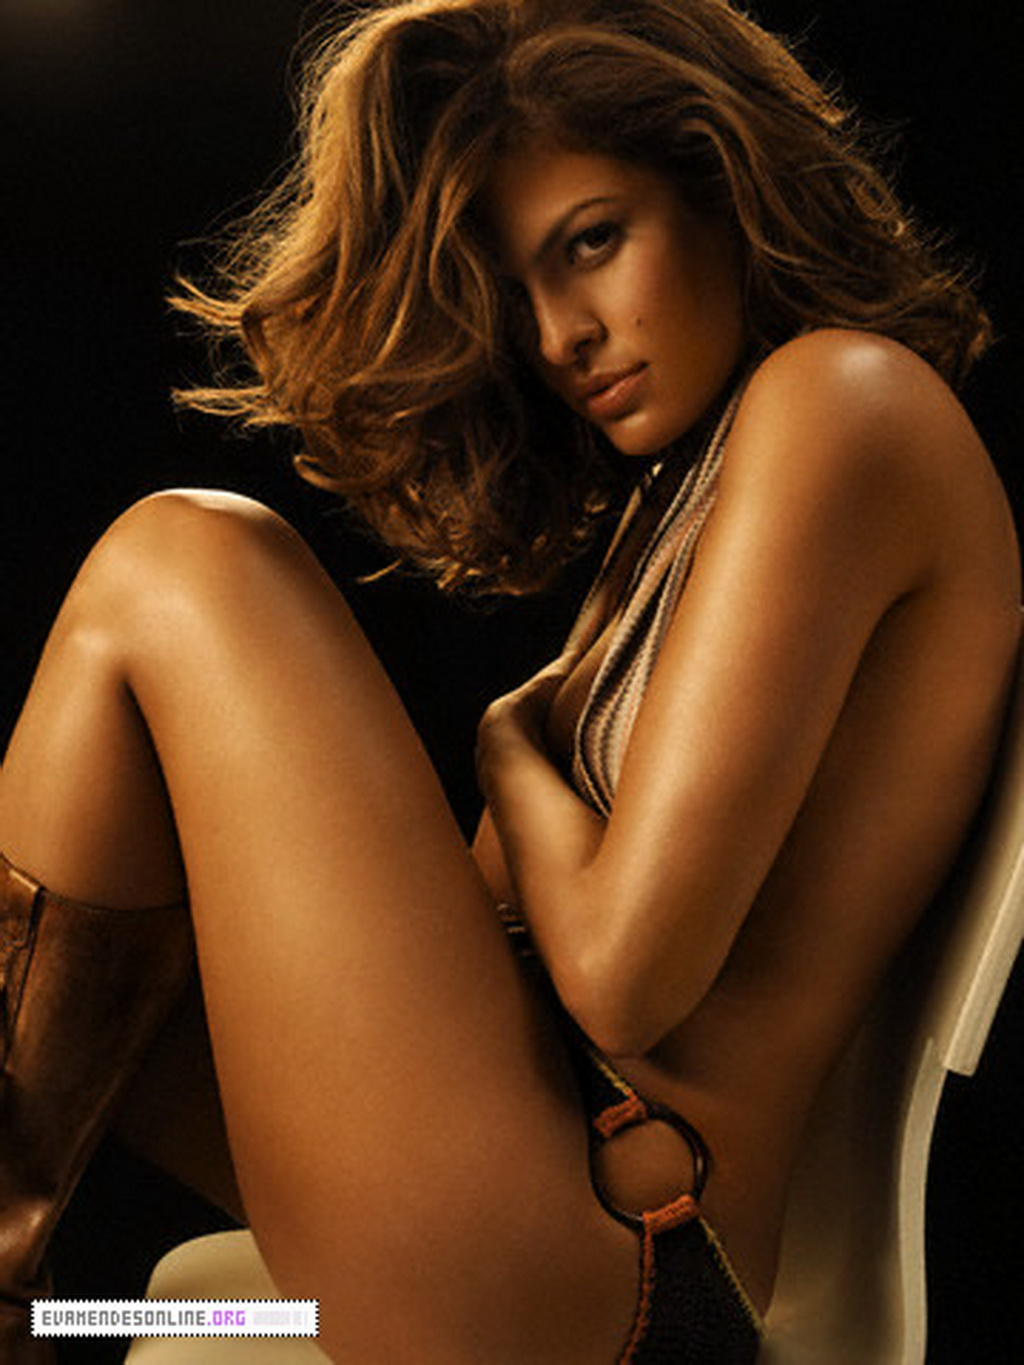 eva mendez very hot